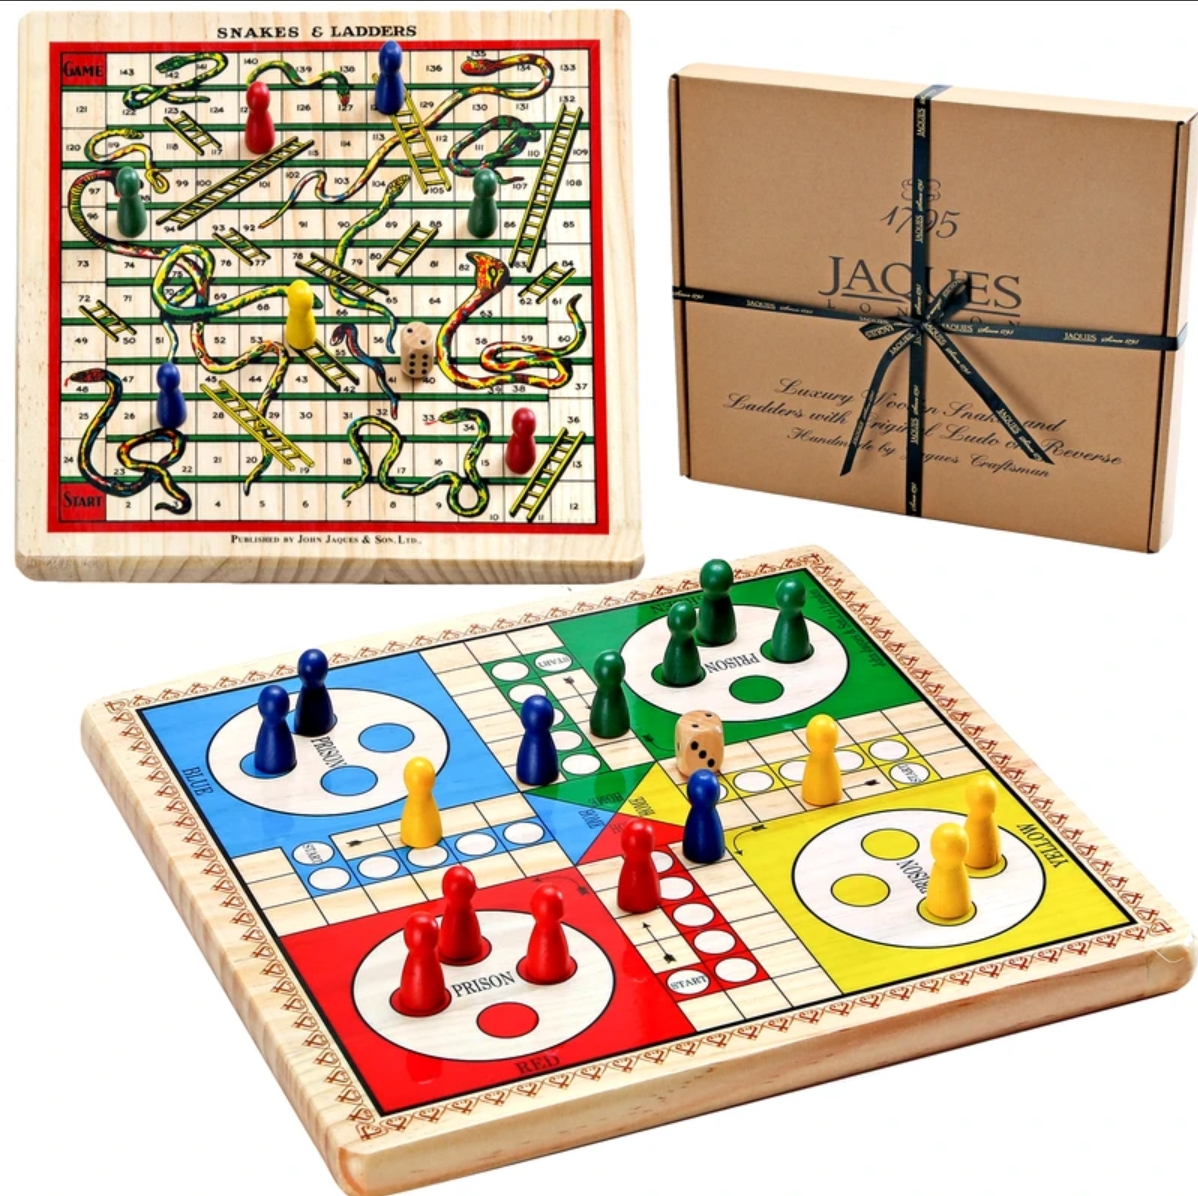 Snakes and Ladders & Ludo on a Reversible Board by Jaques of London